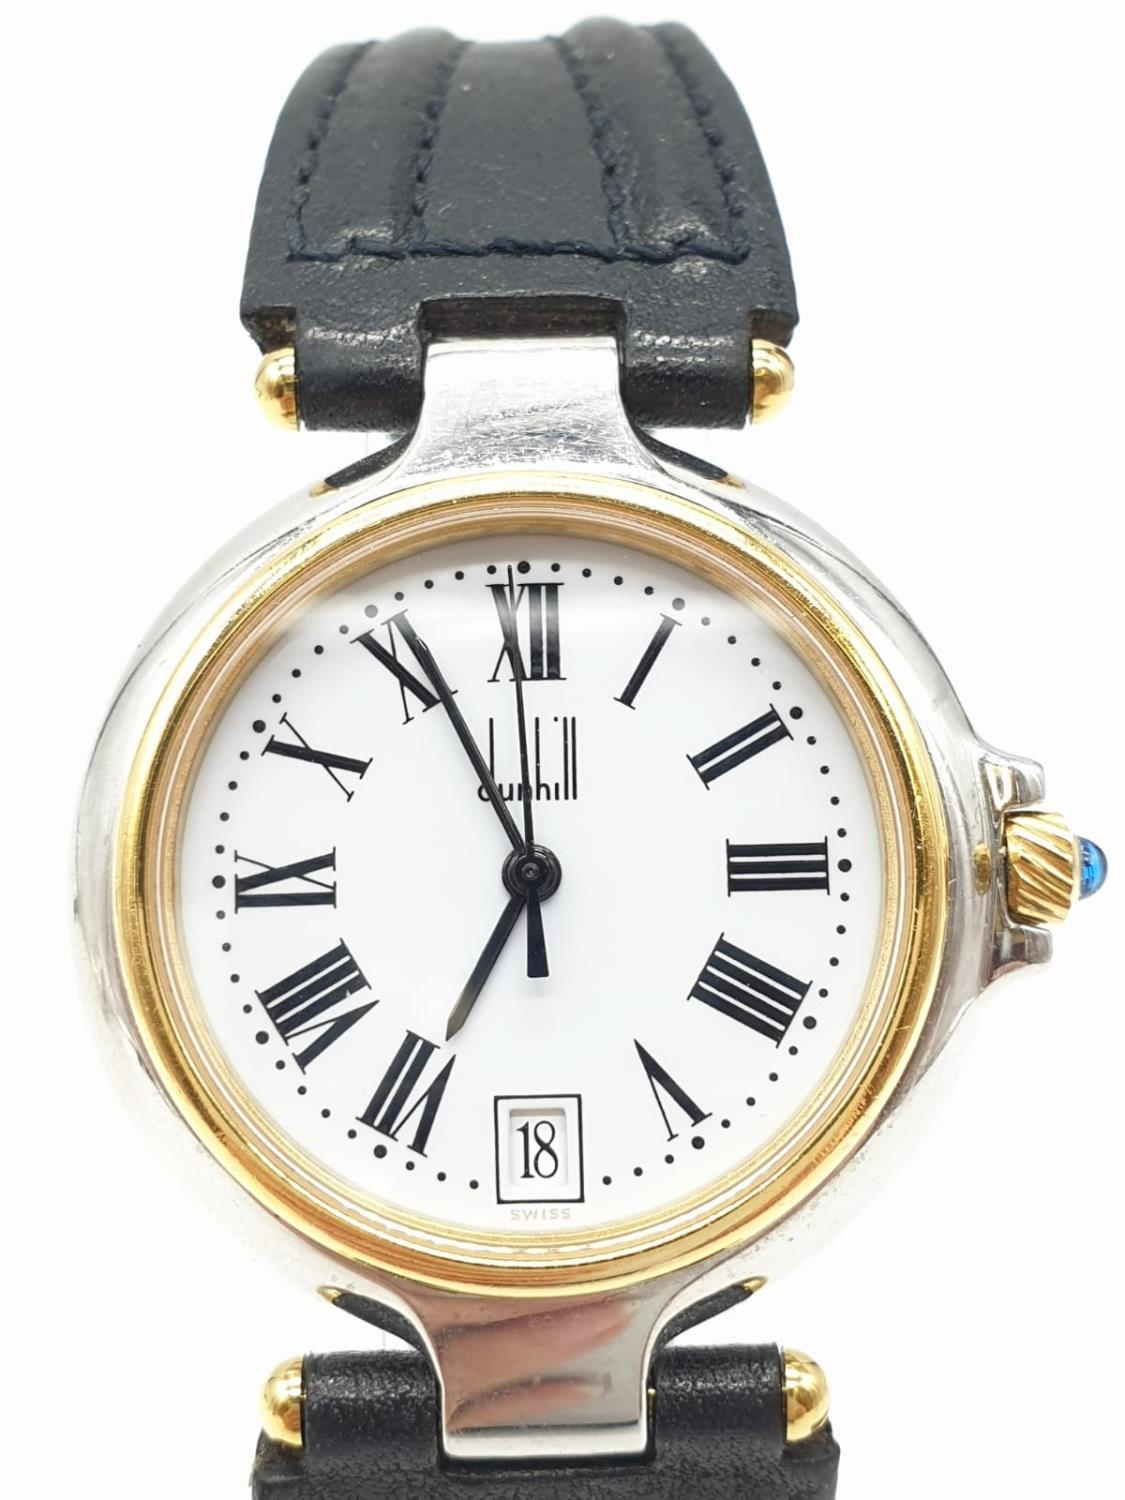 Dunhill Unisex Quartz Watch. New and Unworn. White Face with Roman Numerals. - Image 3 of 4